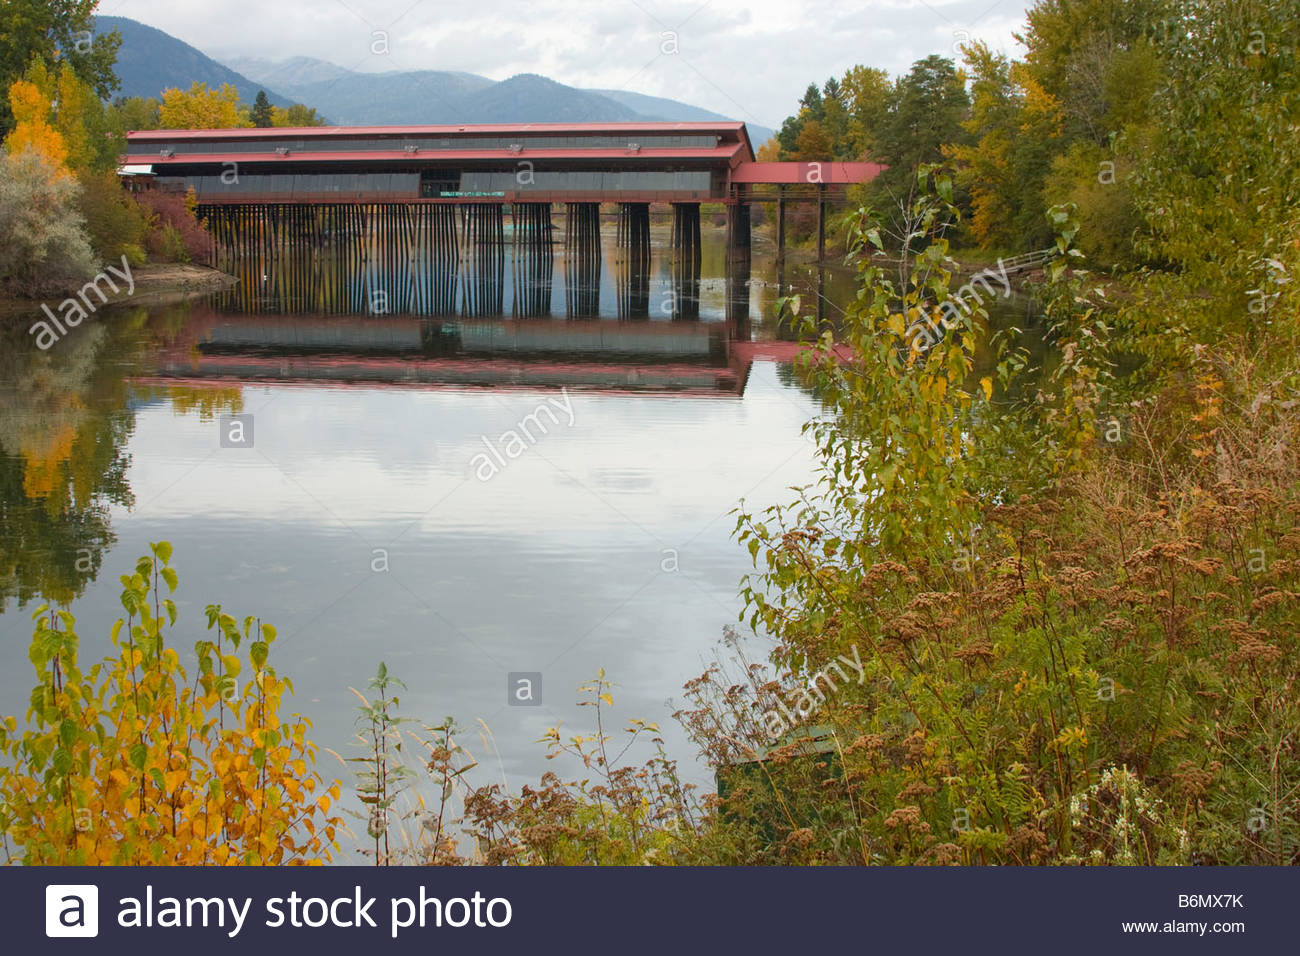 The Cedar Street Bridge in Sandpoint Idaho reflecting in the water of Sand Creek - Stock Image